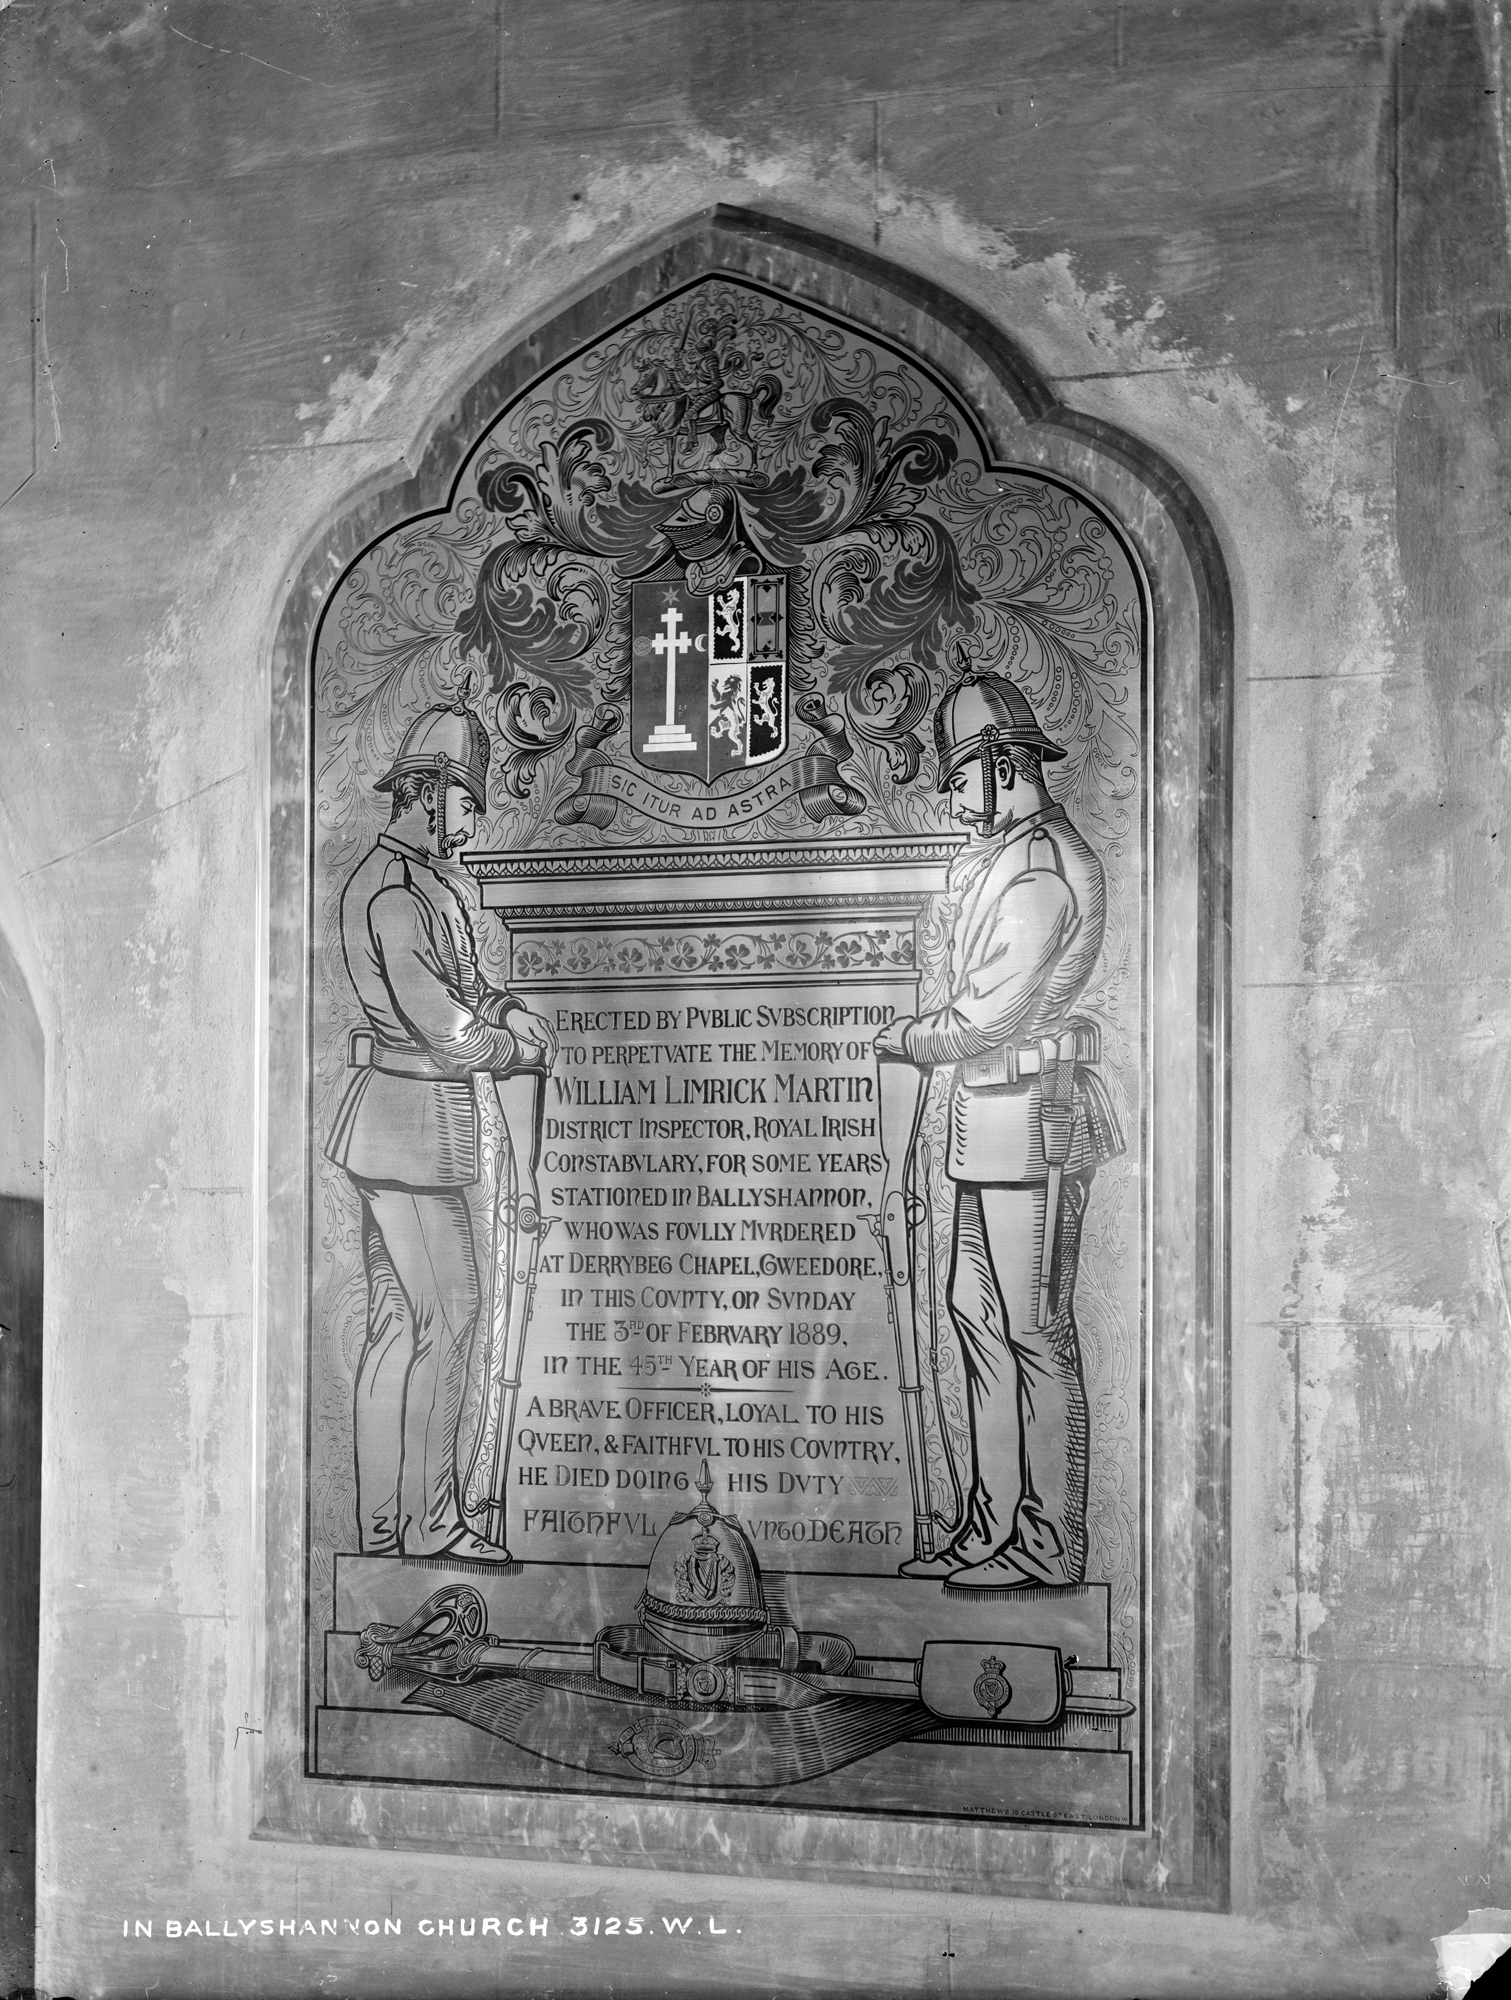 Church, Interior Memorial, Ballyshannon, Co. Donegal